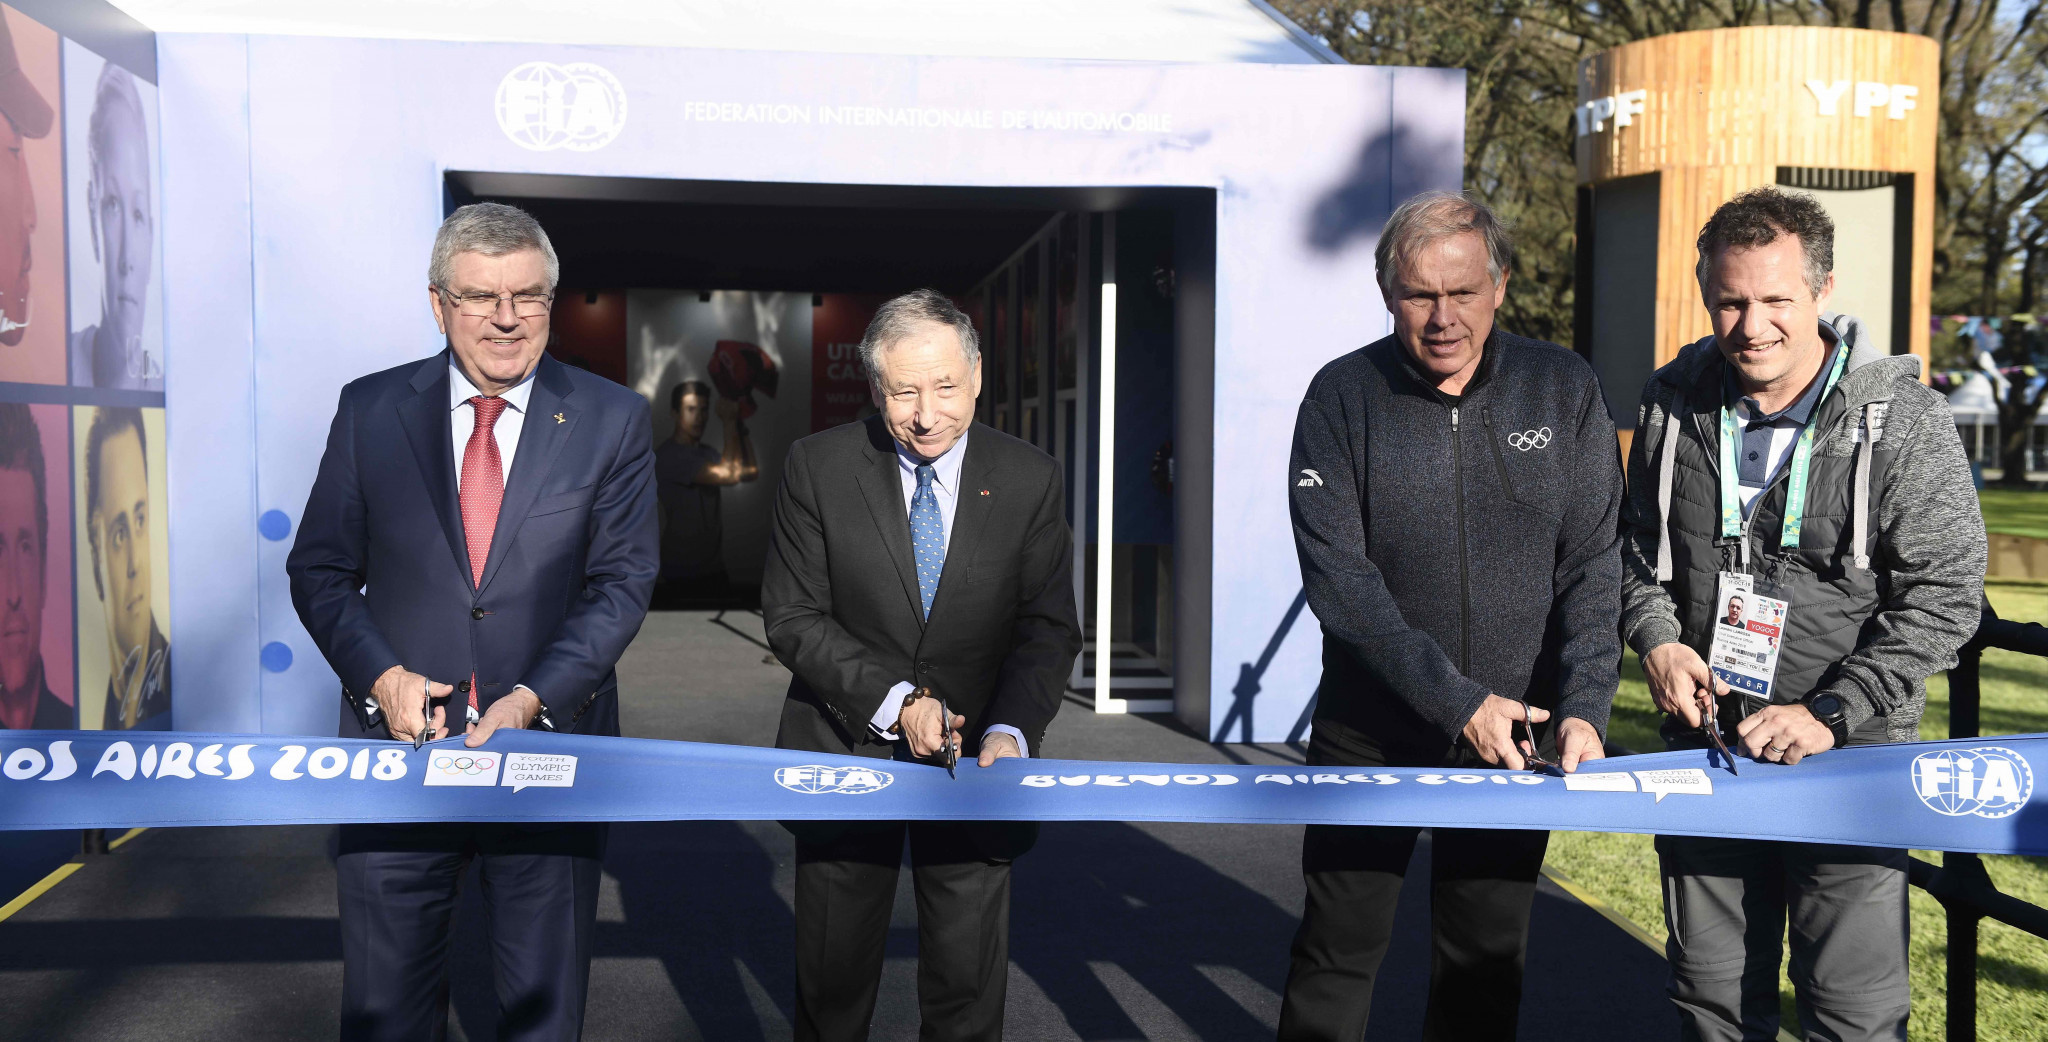 FIA Road Safety Exhibition opened by Todt and Bach at Buenos Aires 2018